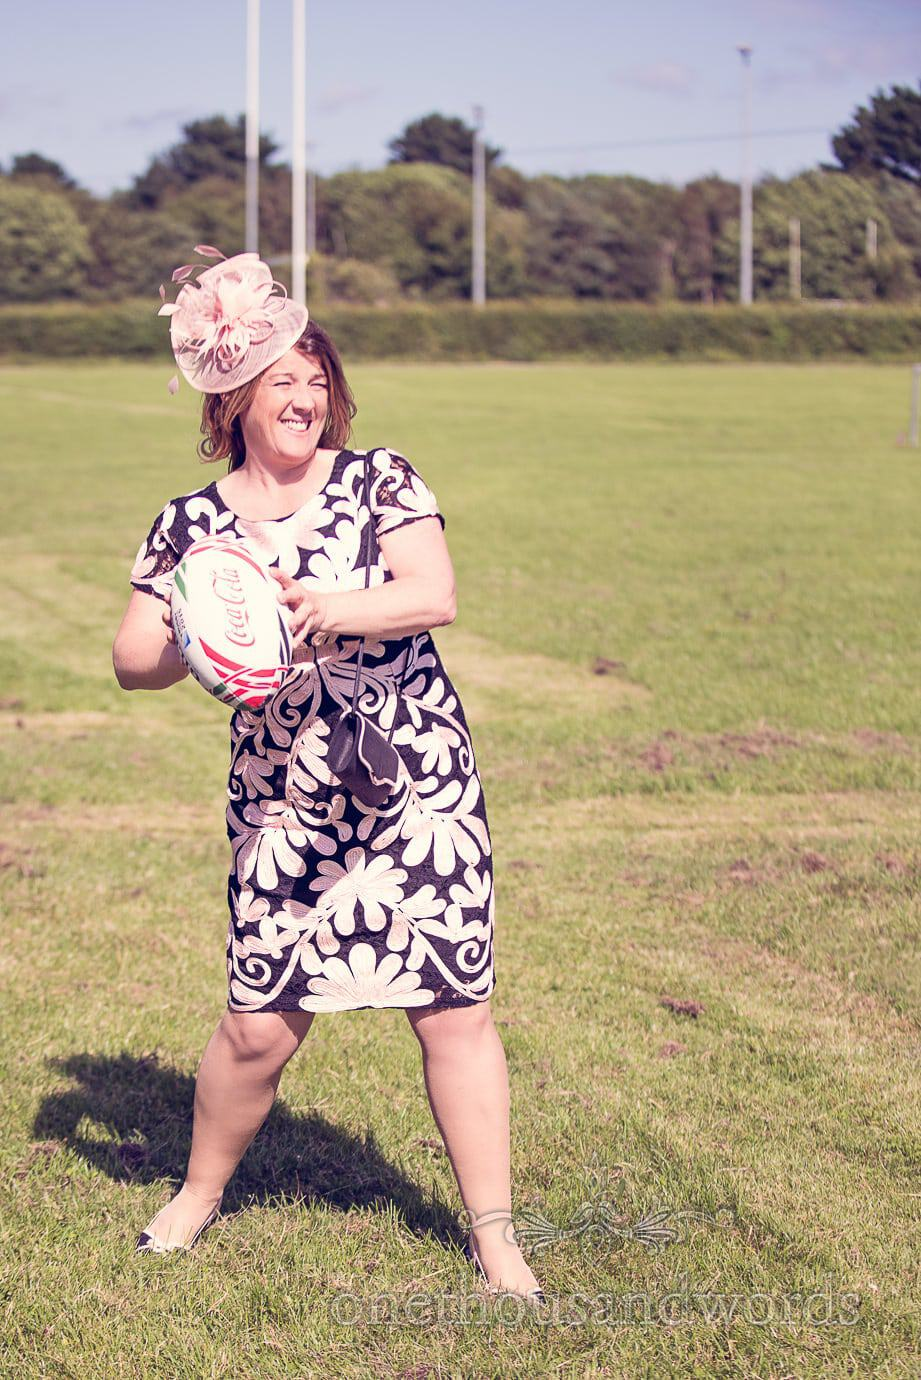 Wedding guest in black and white dress plays rugby at drinks reception